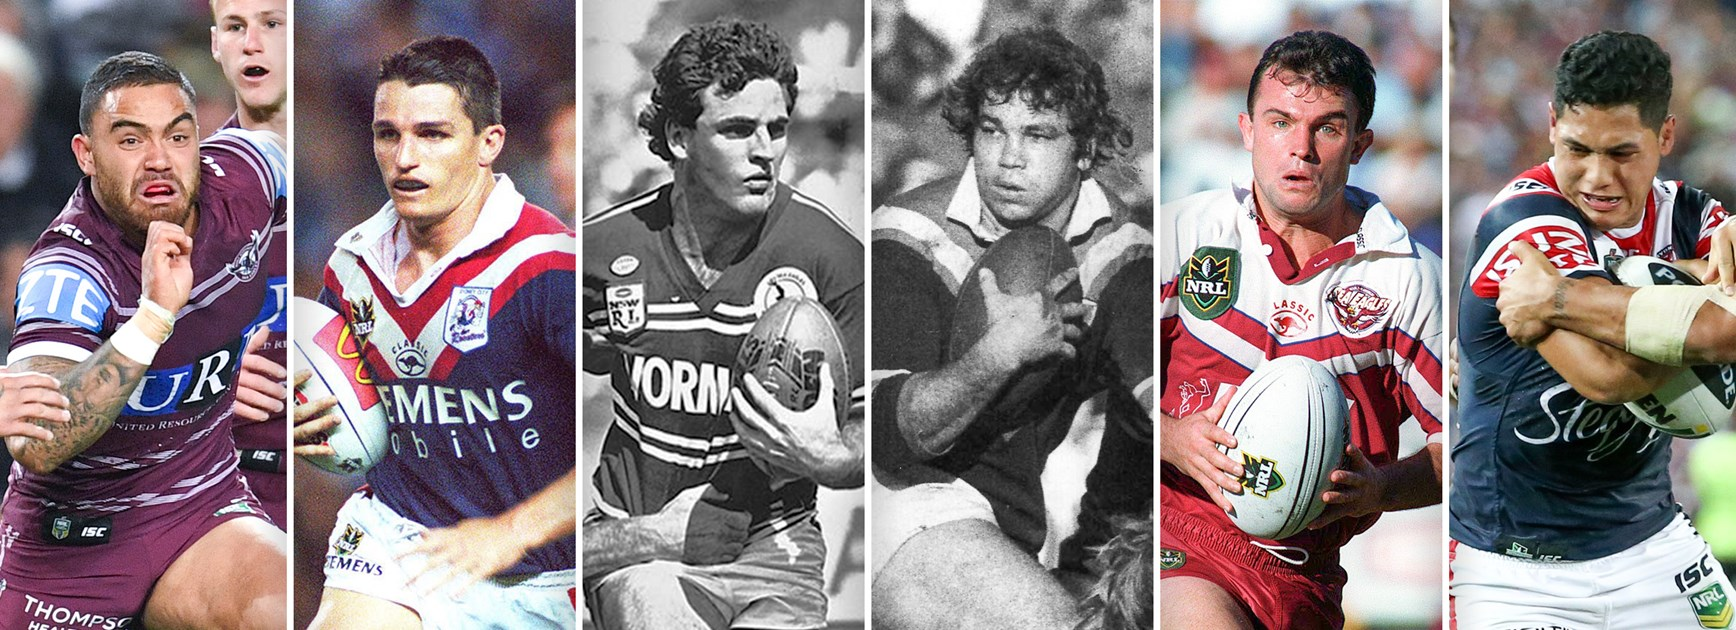 Feathers flying: The greatest Sea Eagles v Roosters clashes